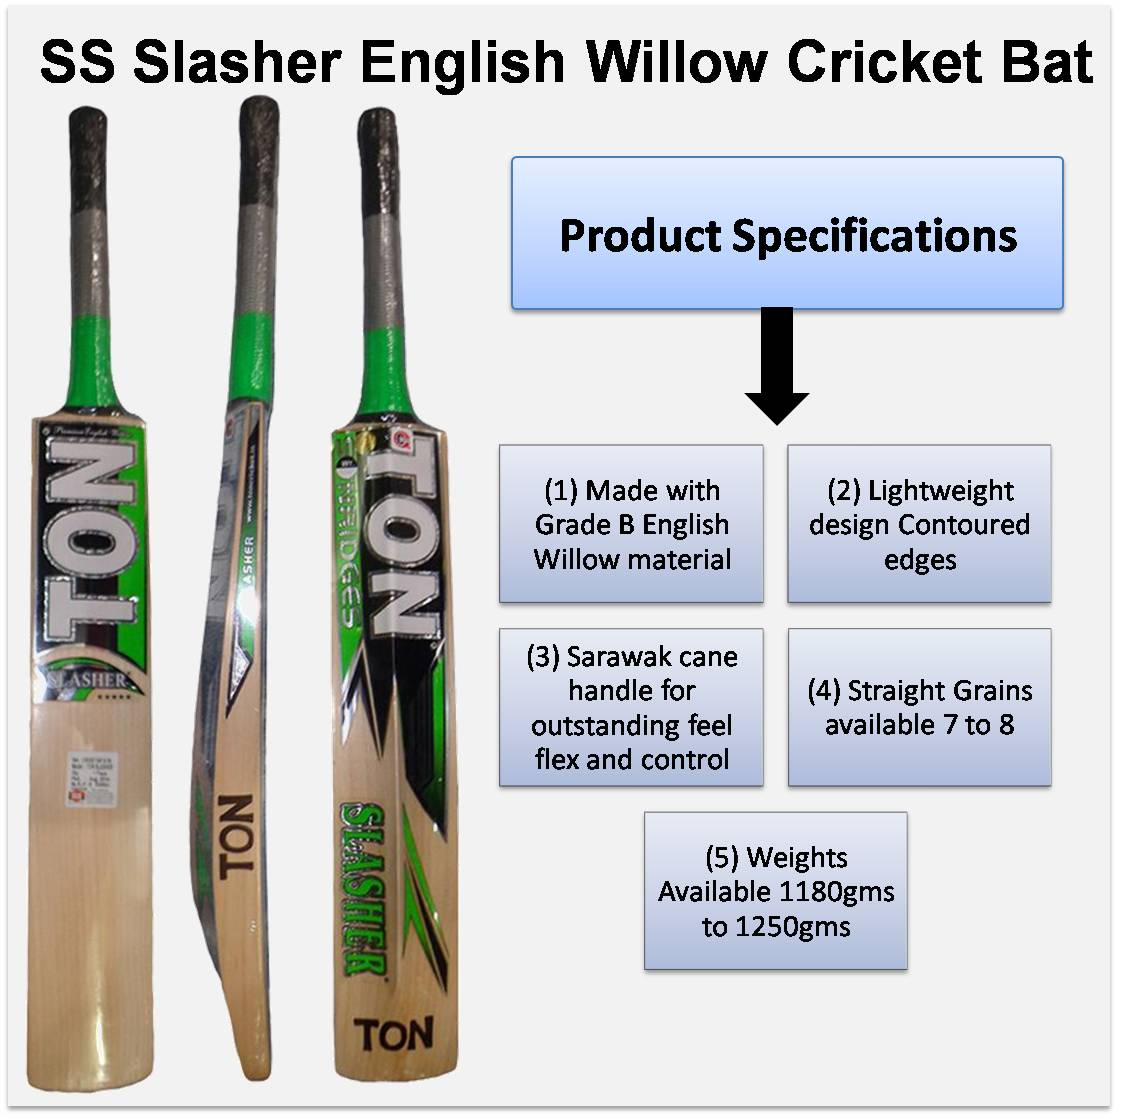 SS Slasher English Willow Cricket Bat